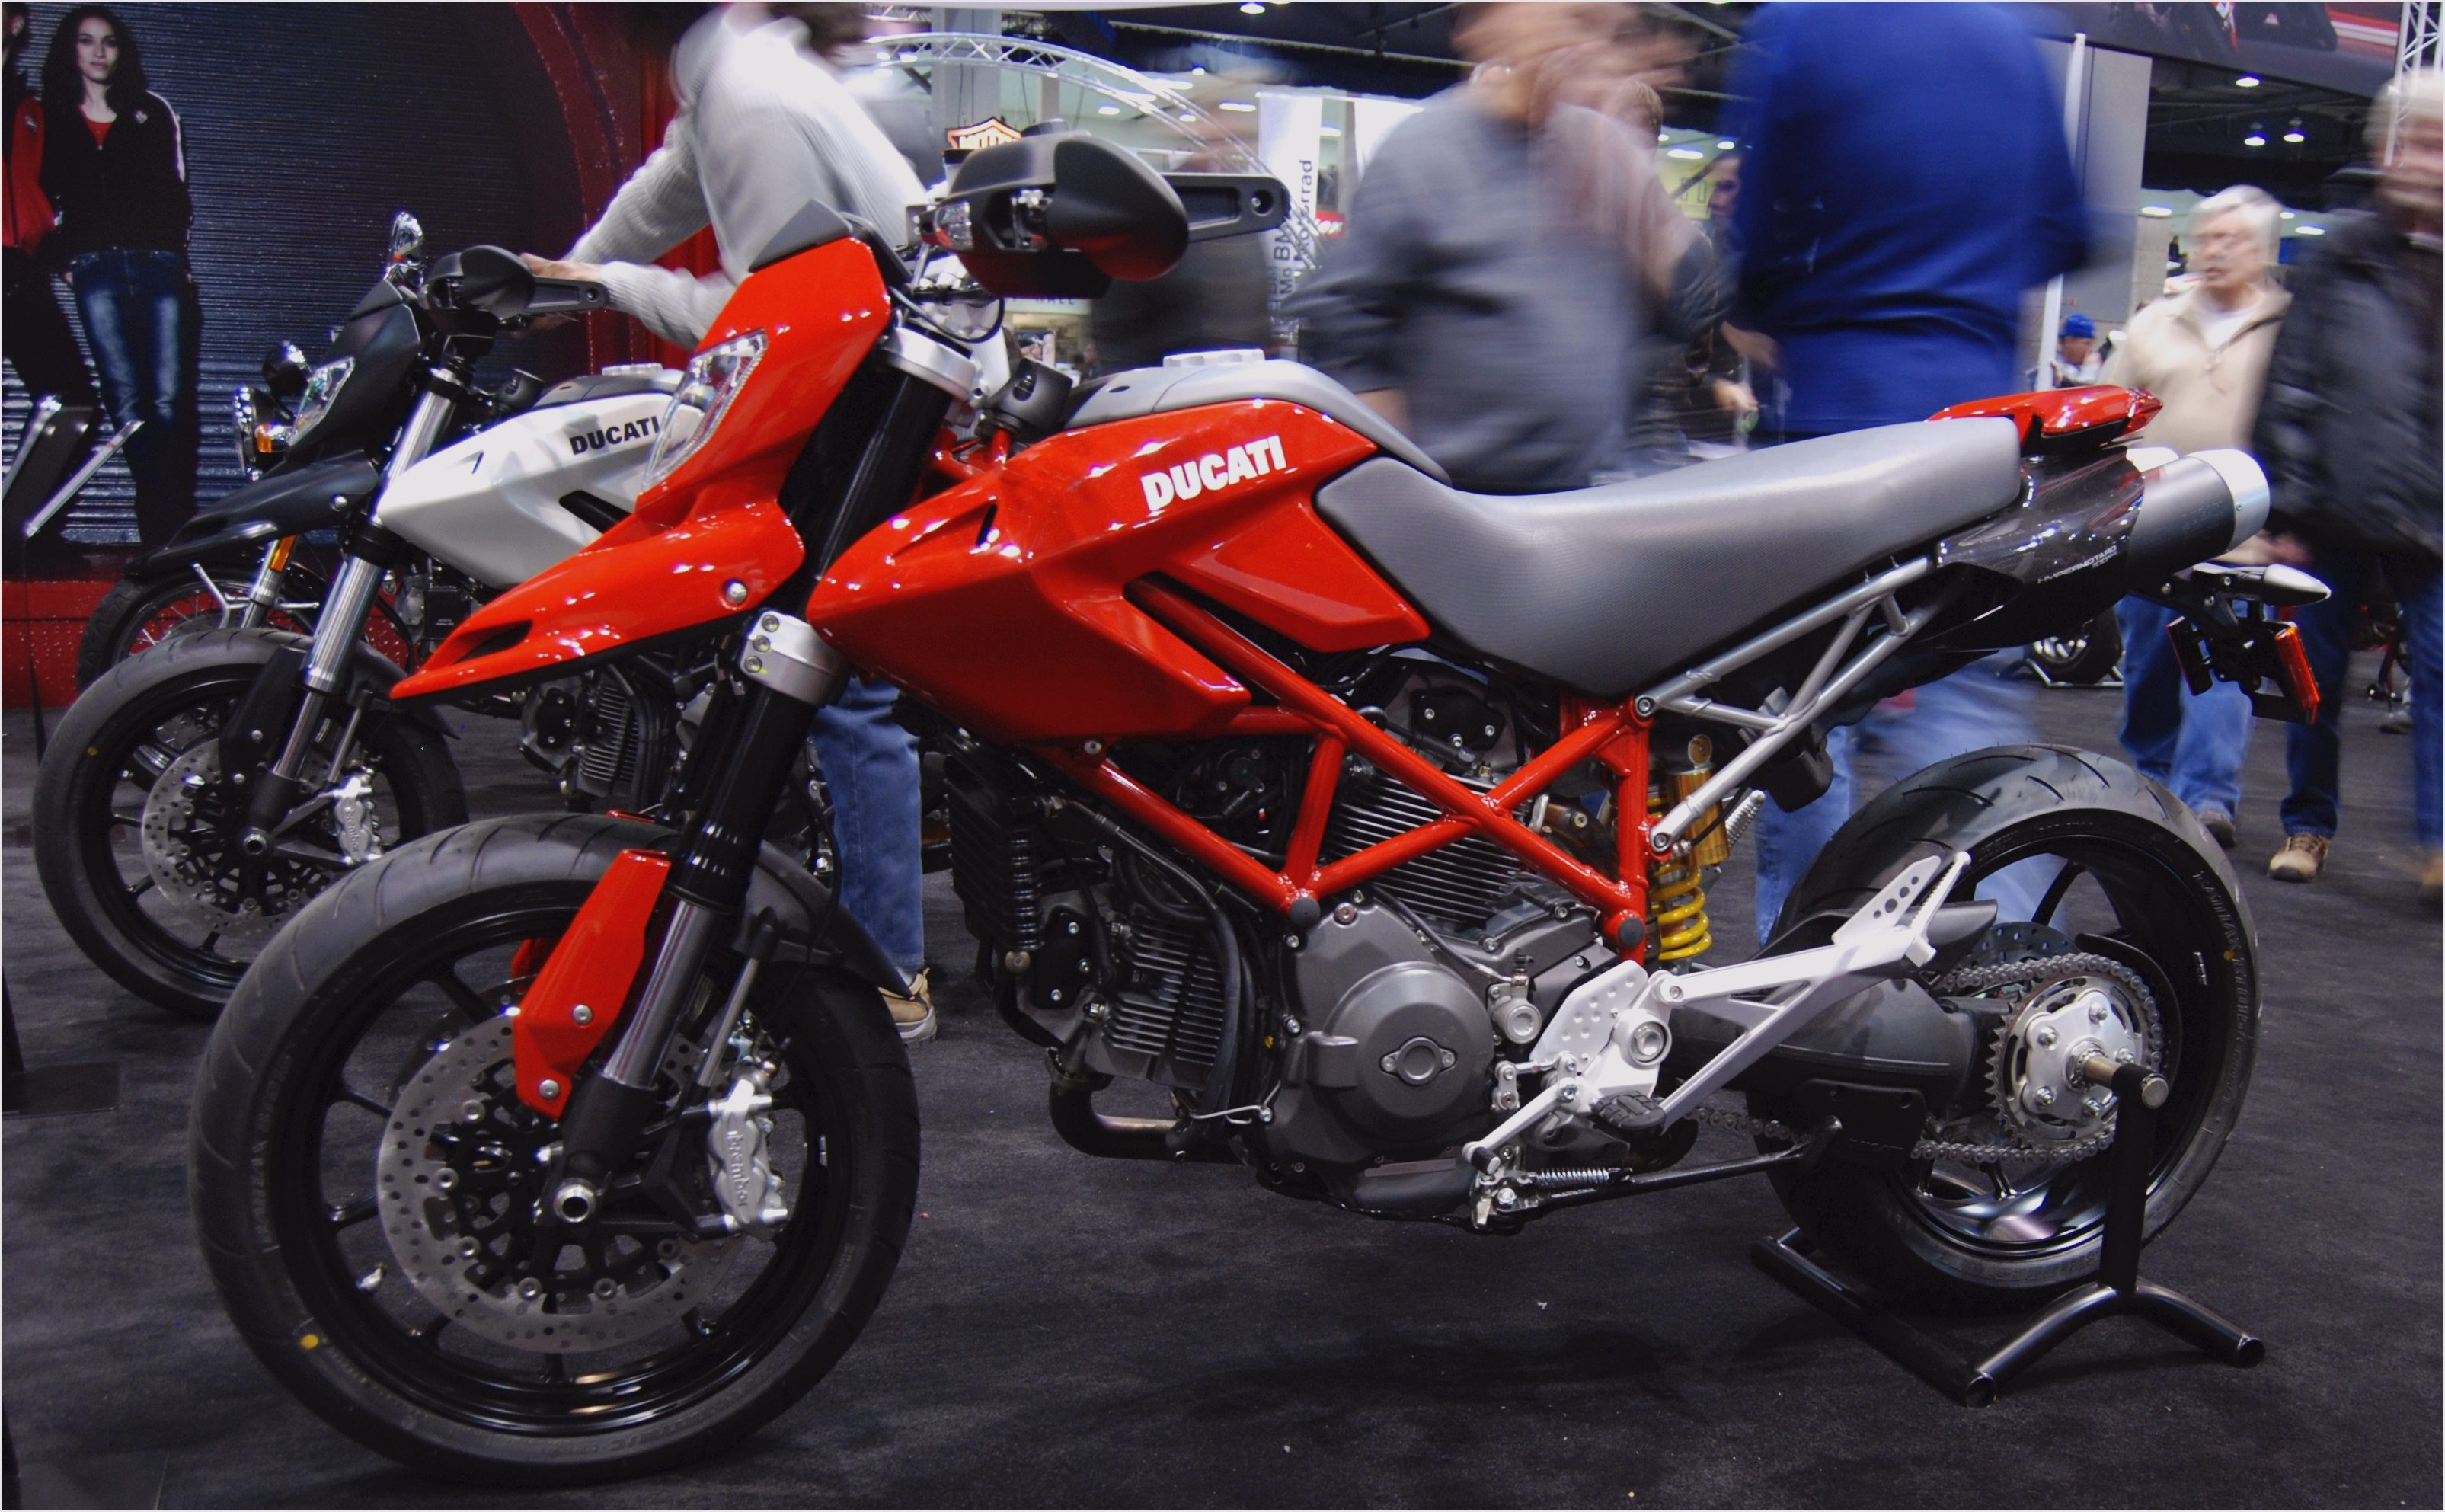 Ducati Hypermotard 796 images #79590